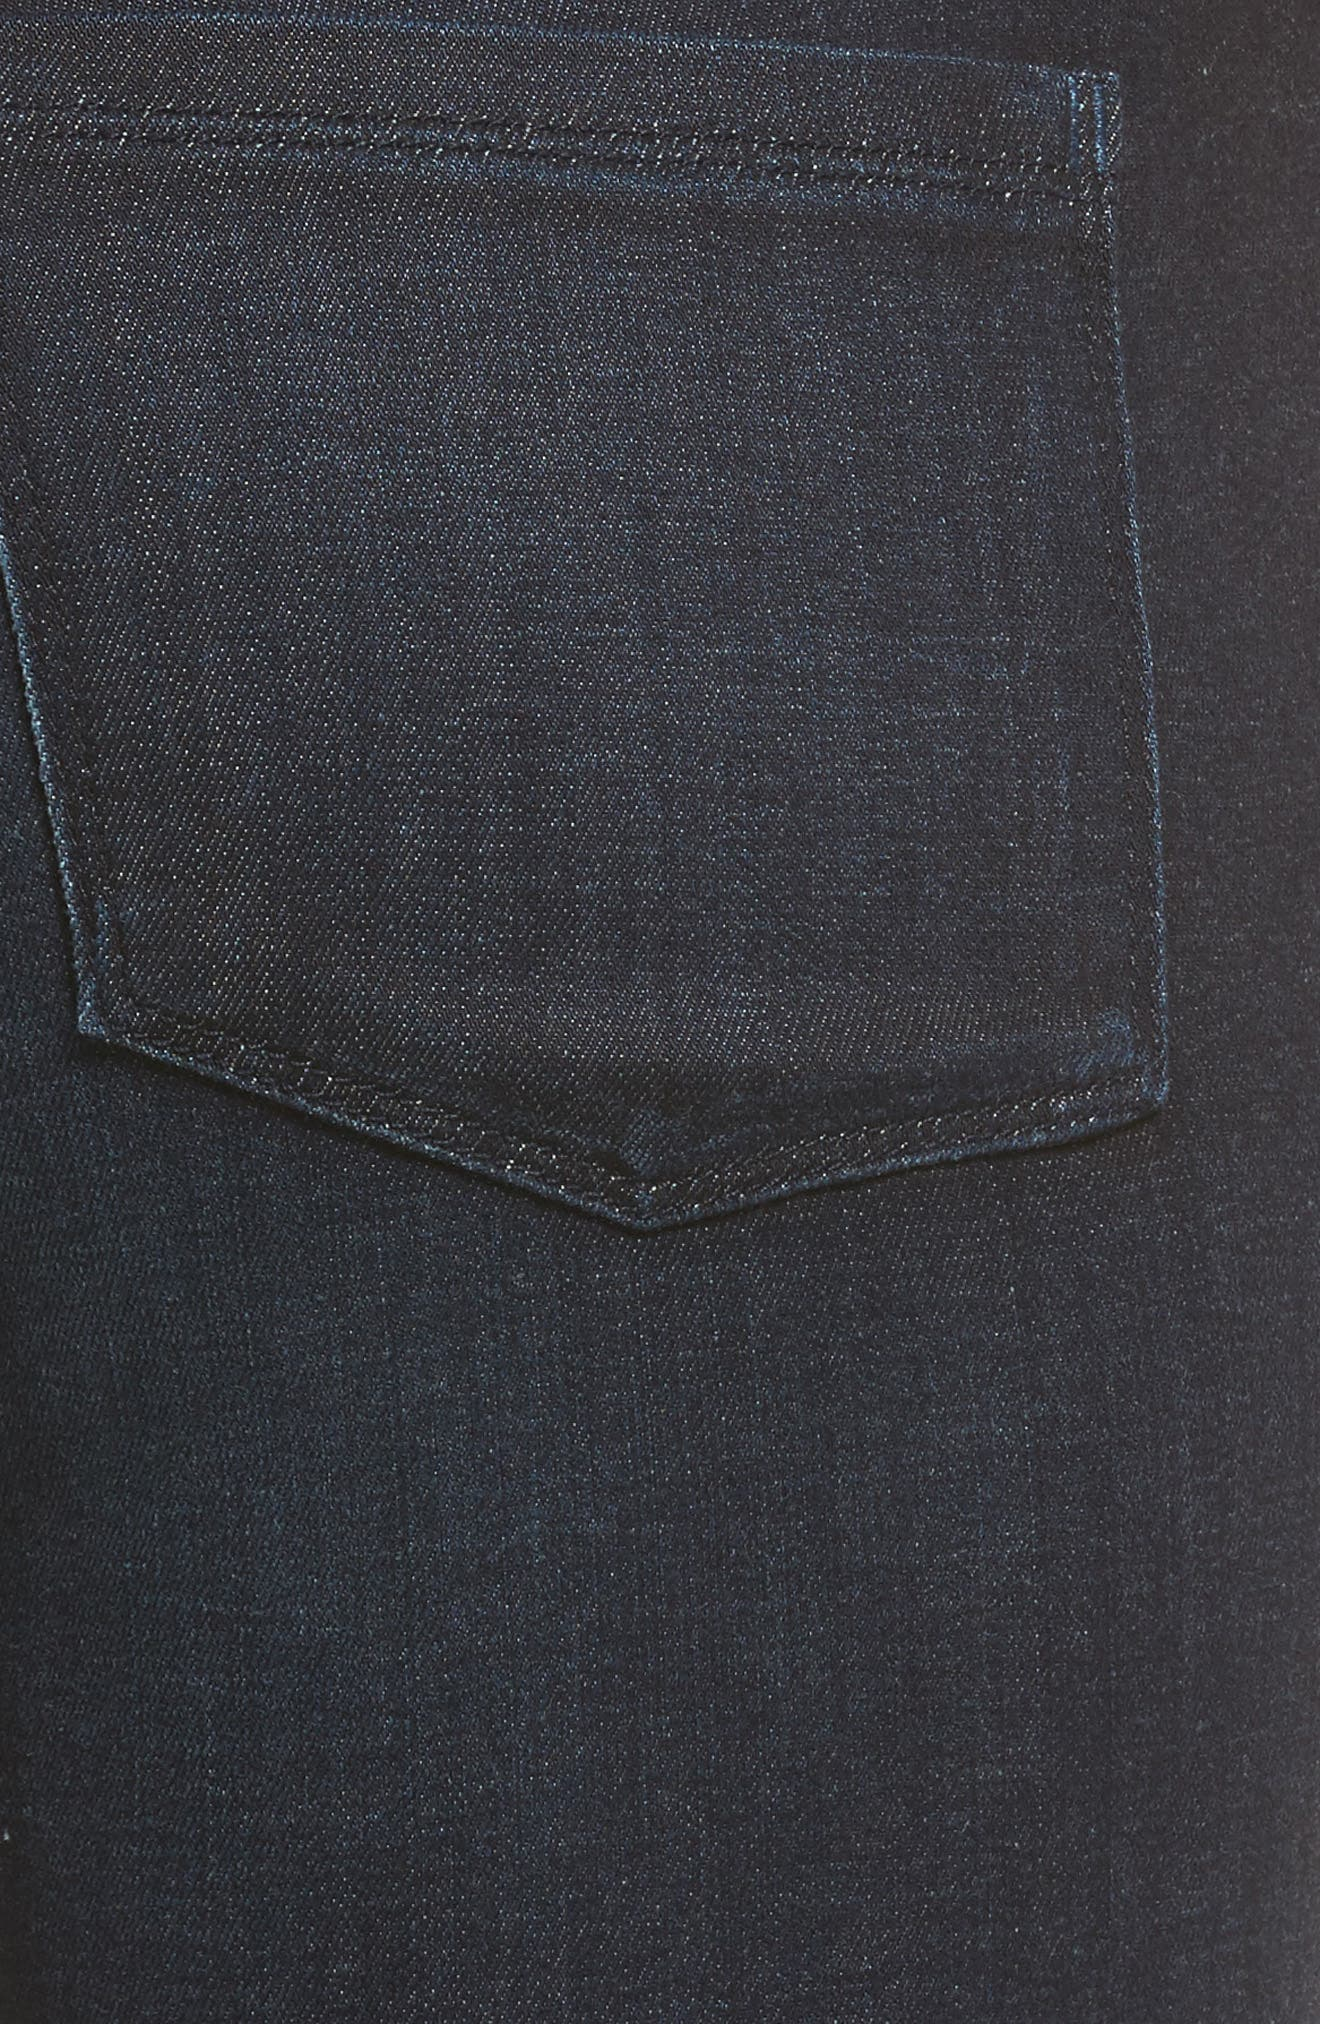 Becky Bootcut Jeans,                             Alternate thumbnail 5, color,                             453